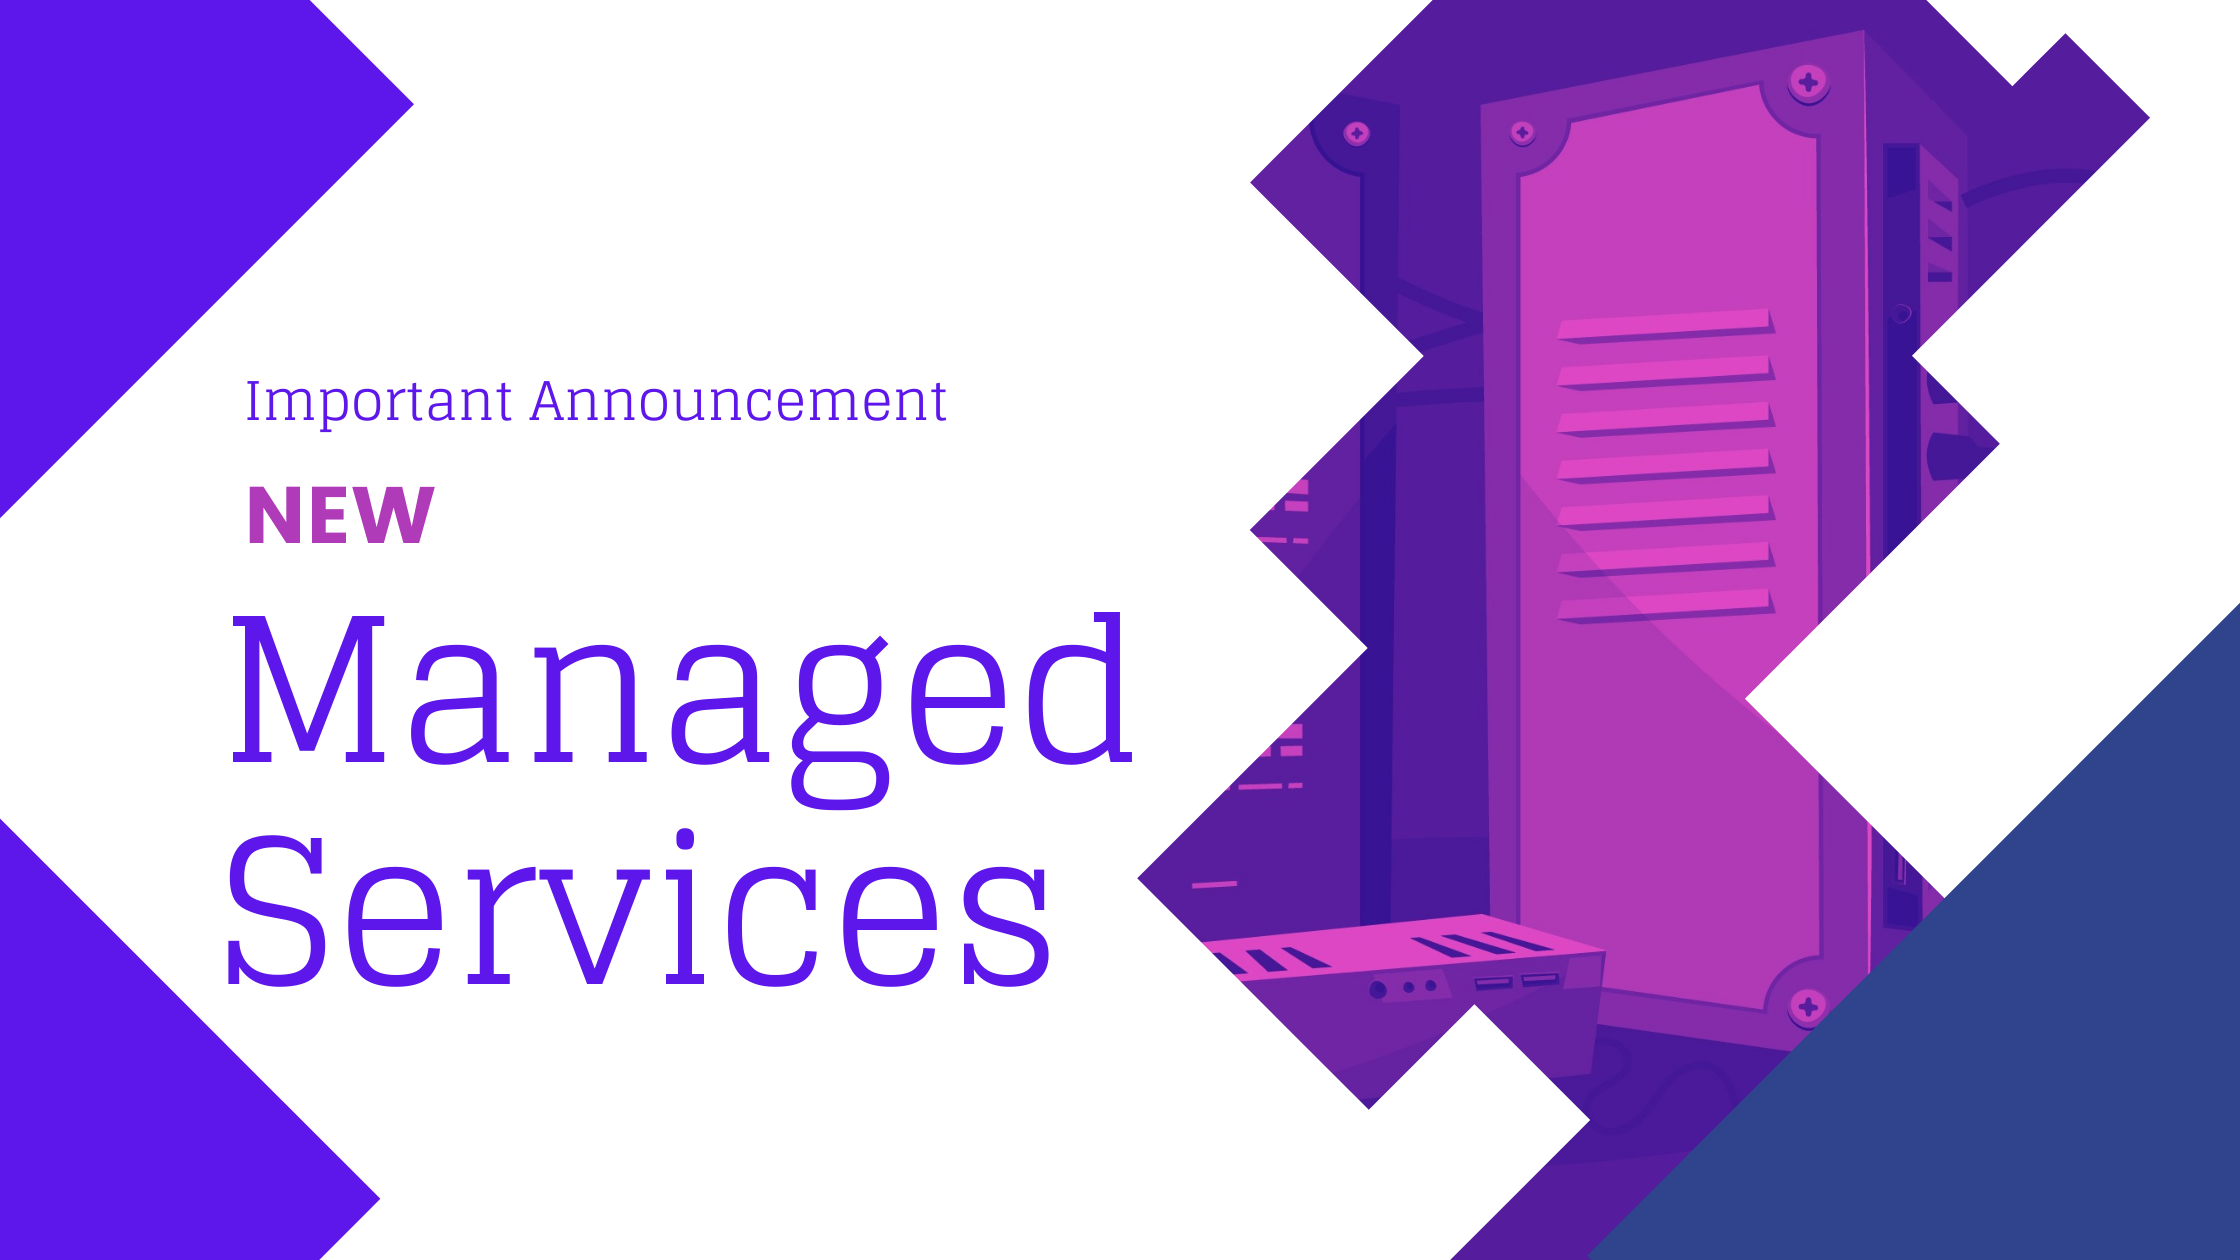 Important: Upcoming changes to our Managed Servers